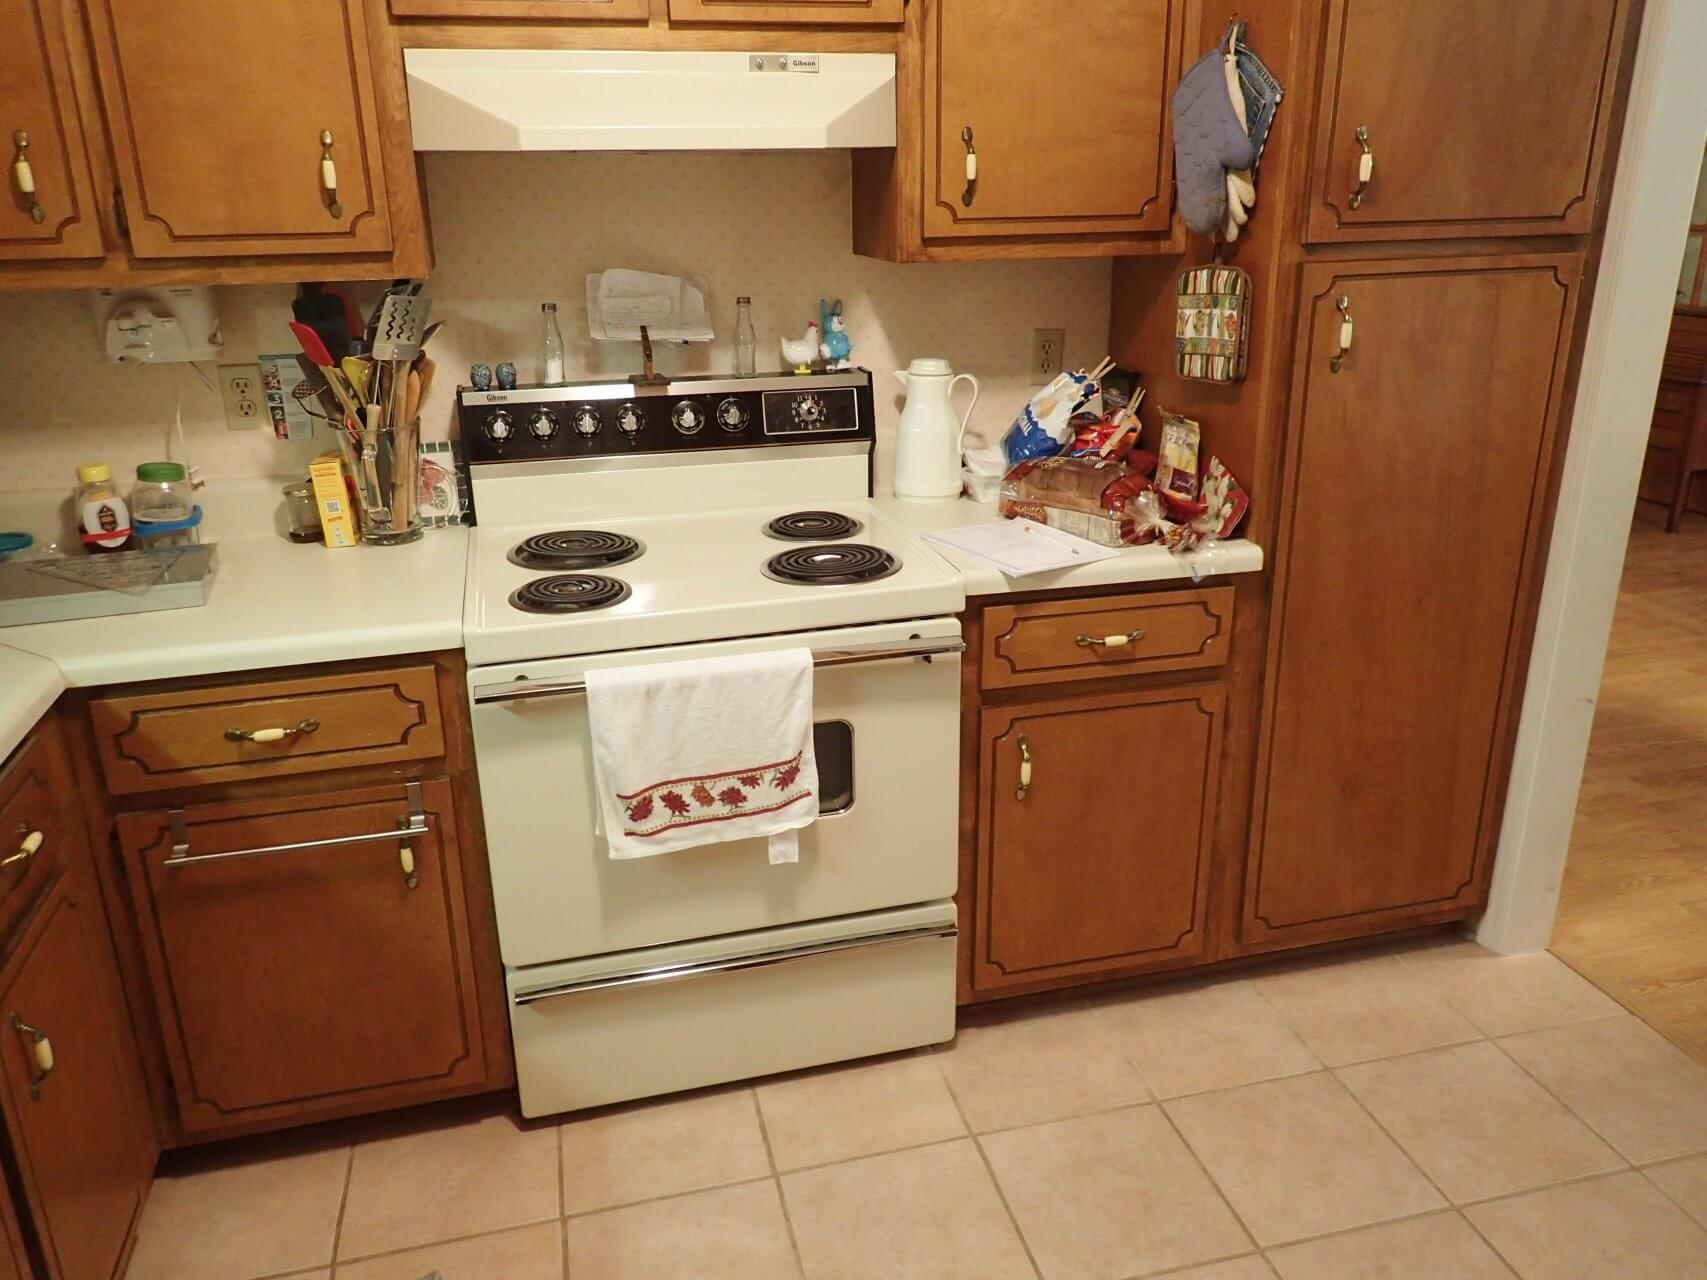 Old kitchen with outdated stove and hood